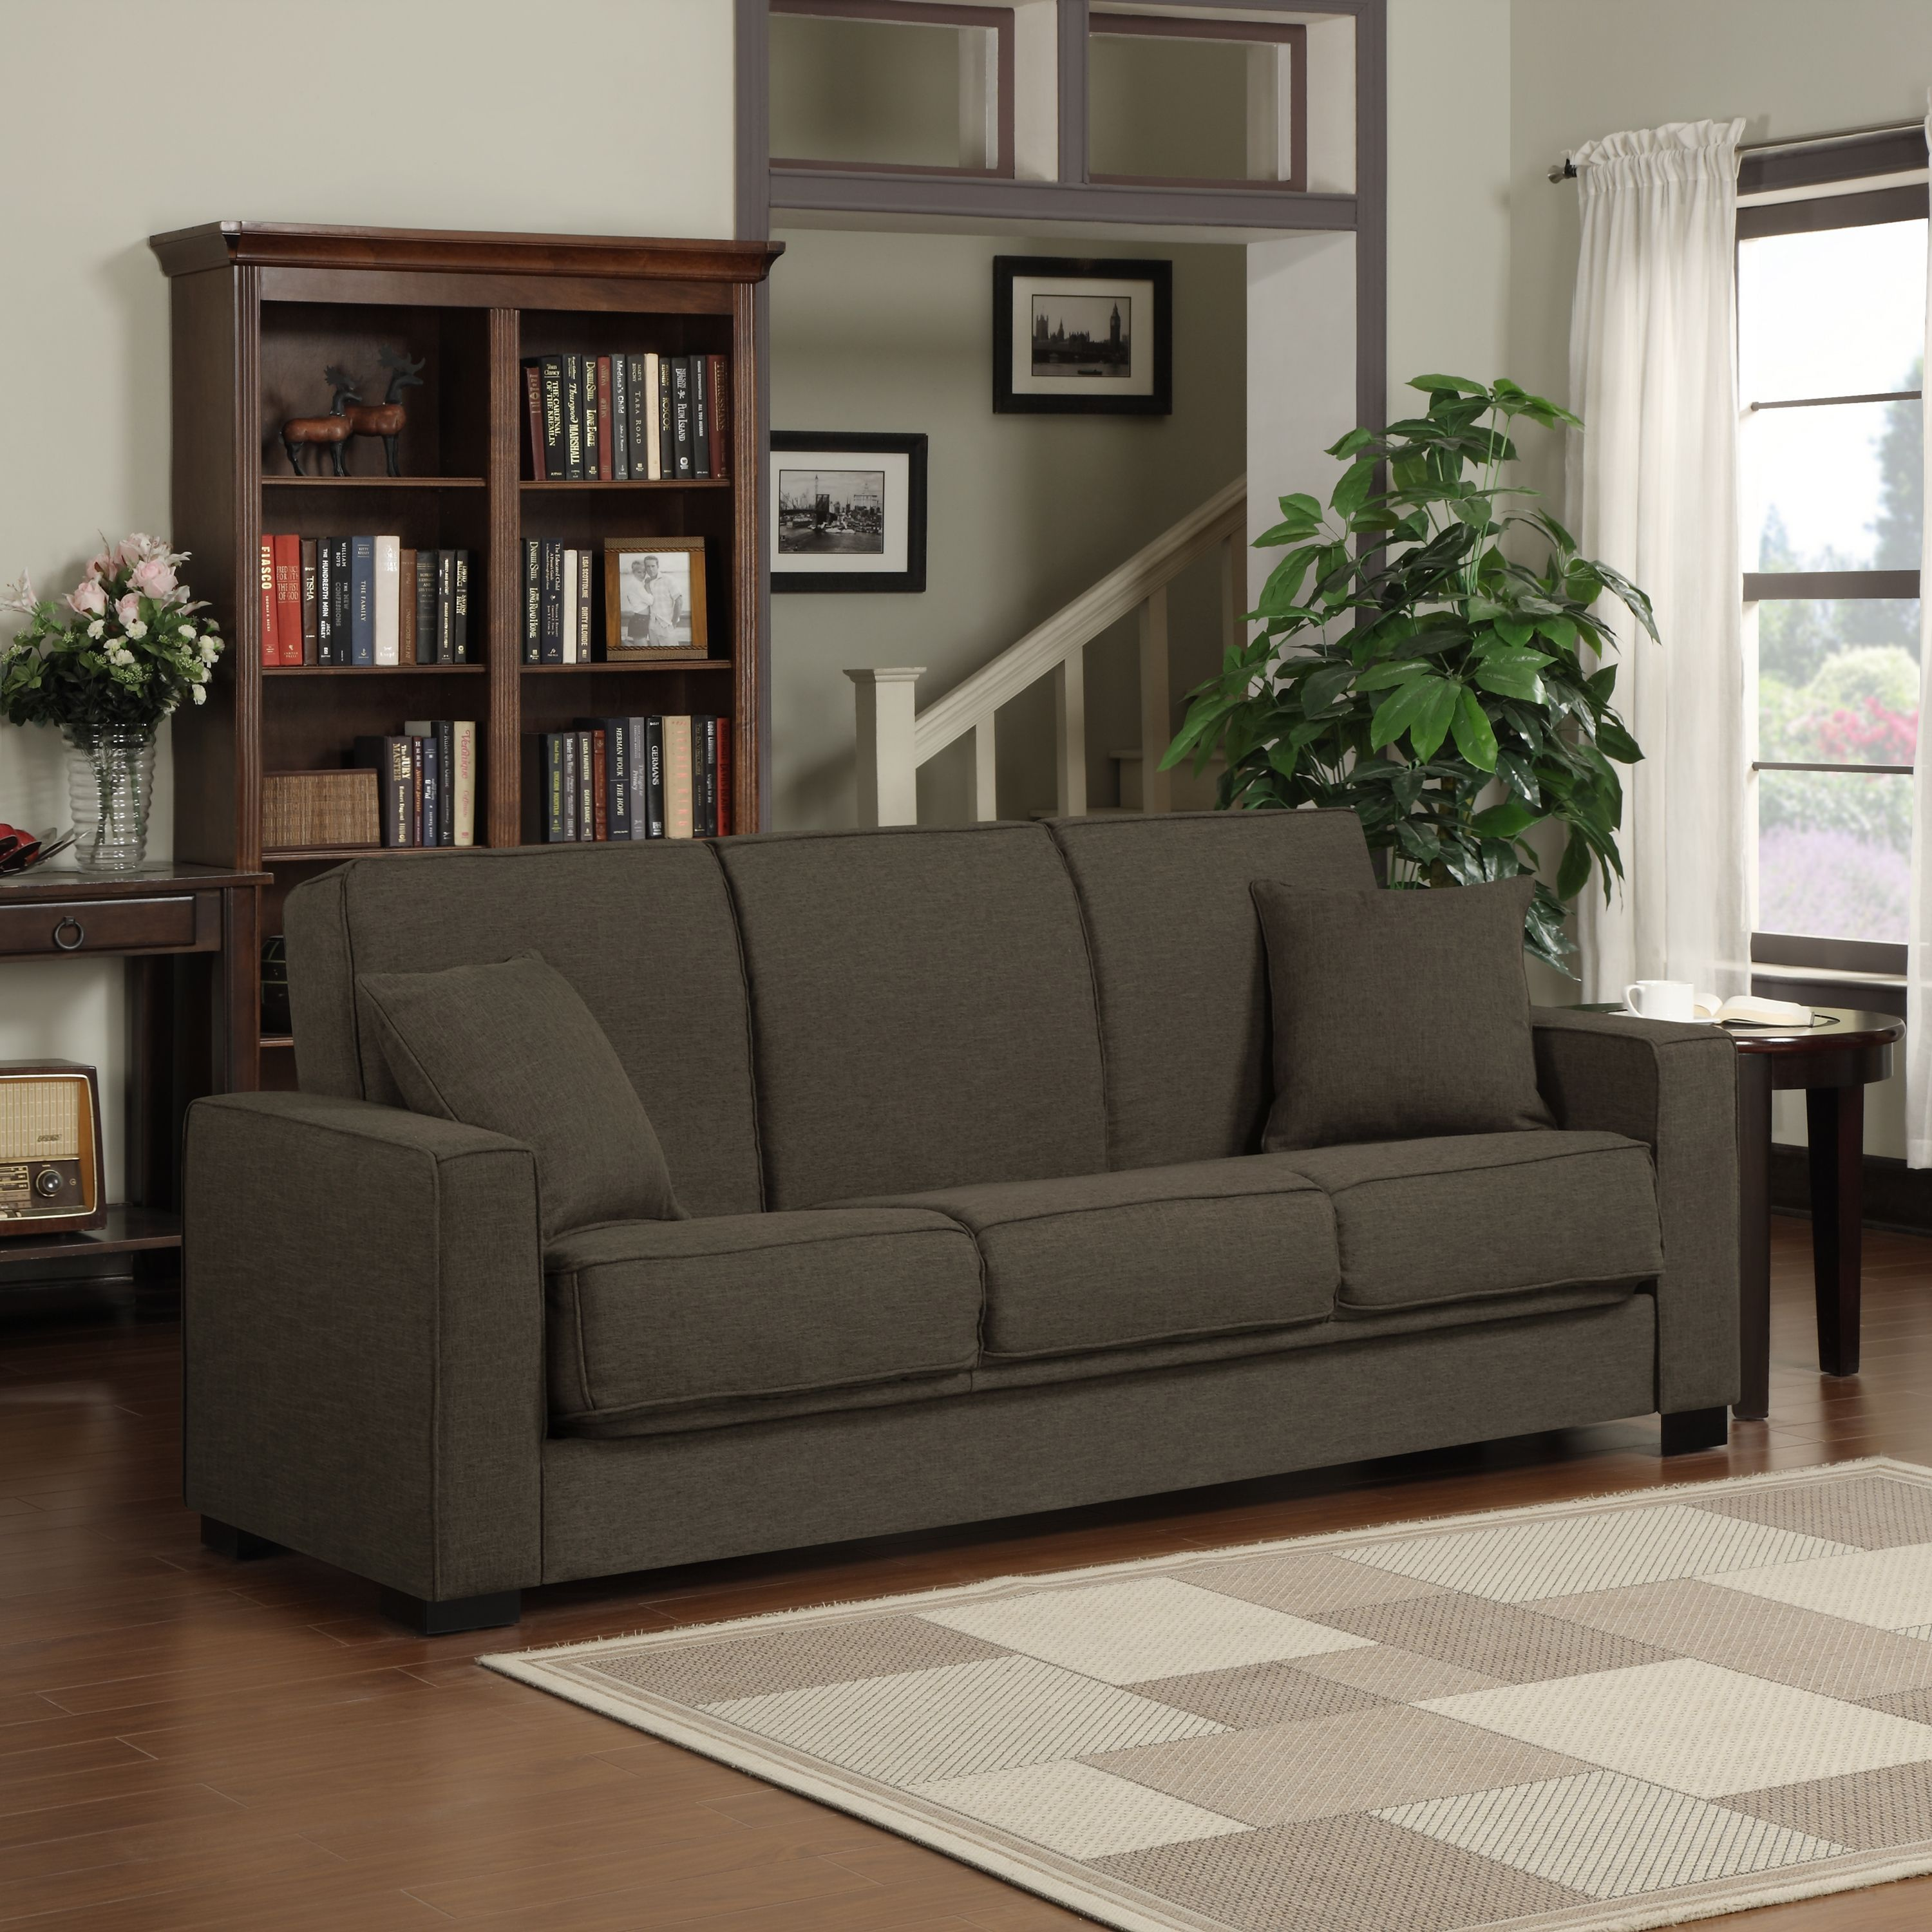 Cojines Sofa Chocolate.Handy Living Mali Convert A Couch Chocolate Brown Linen